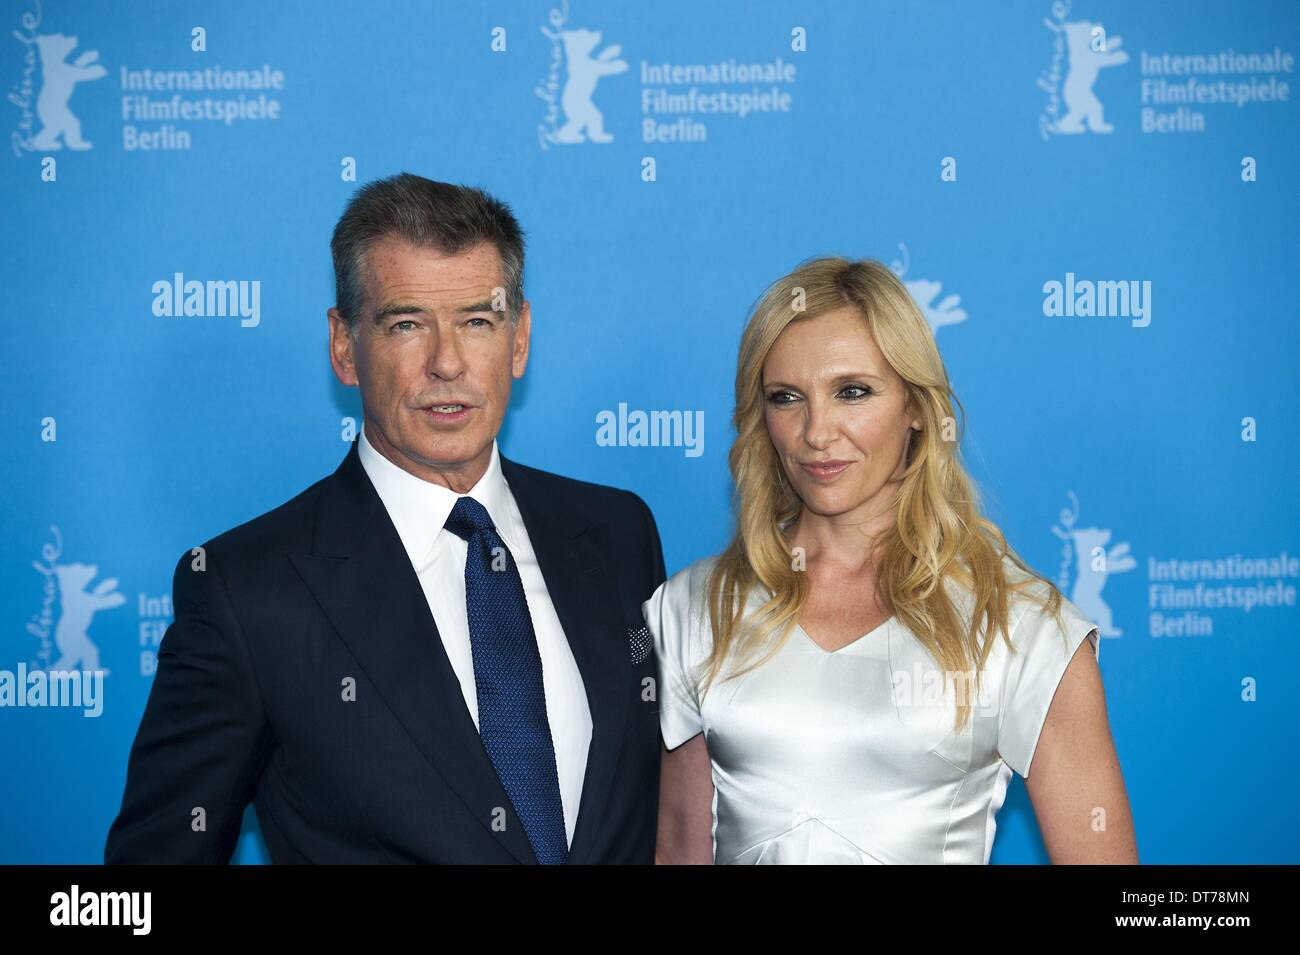 Pierce Brosnan Stock Photos & Pierce Brosnan Stock Images - Alamy